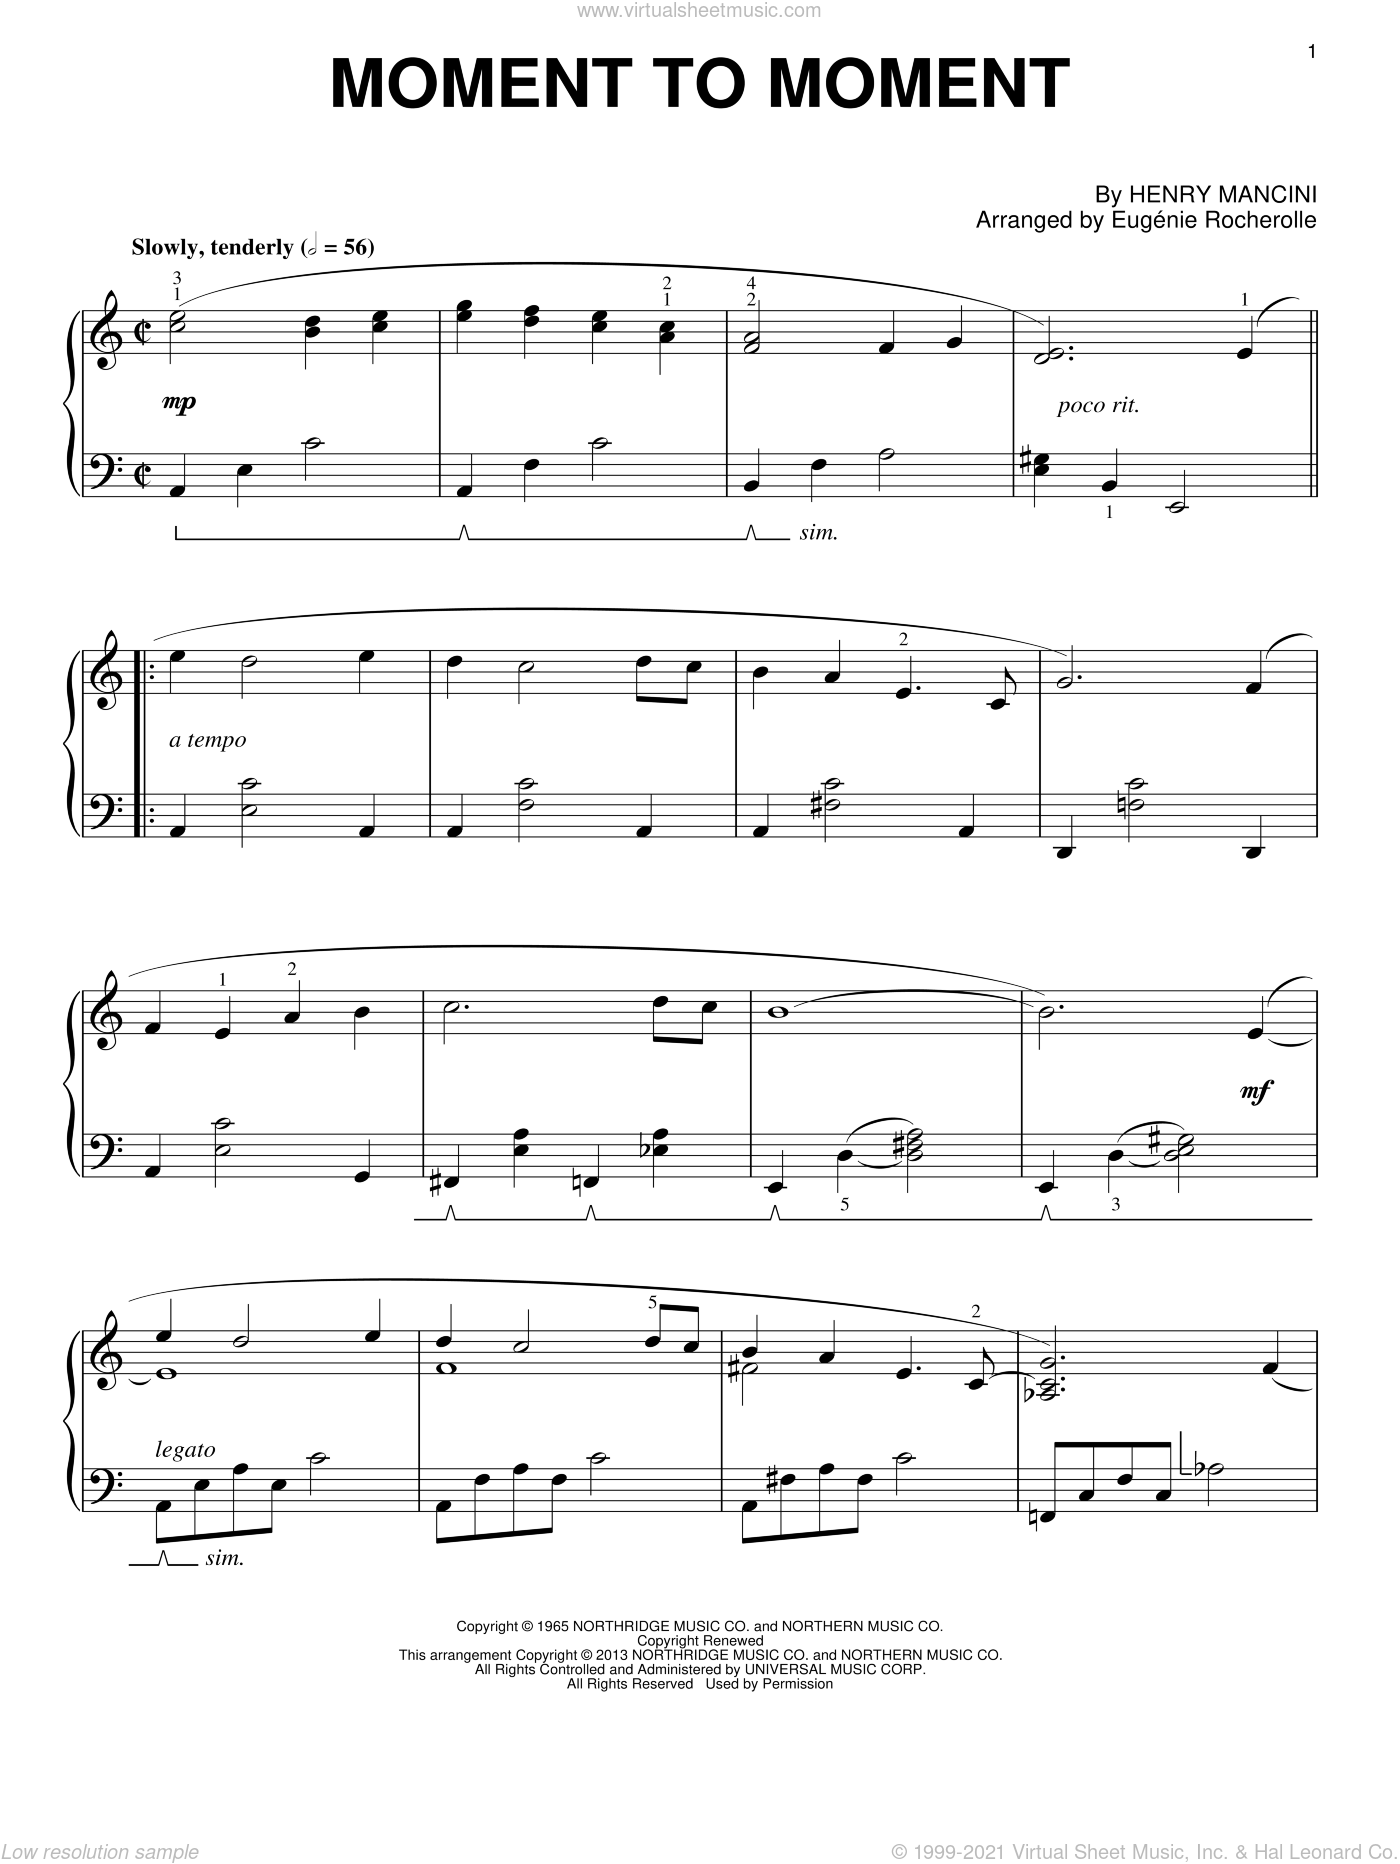 Moment To Moment sheet music for piano solo by Henry Mancini, intermediate skill level